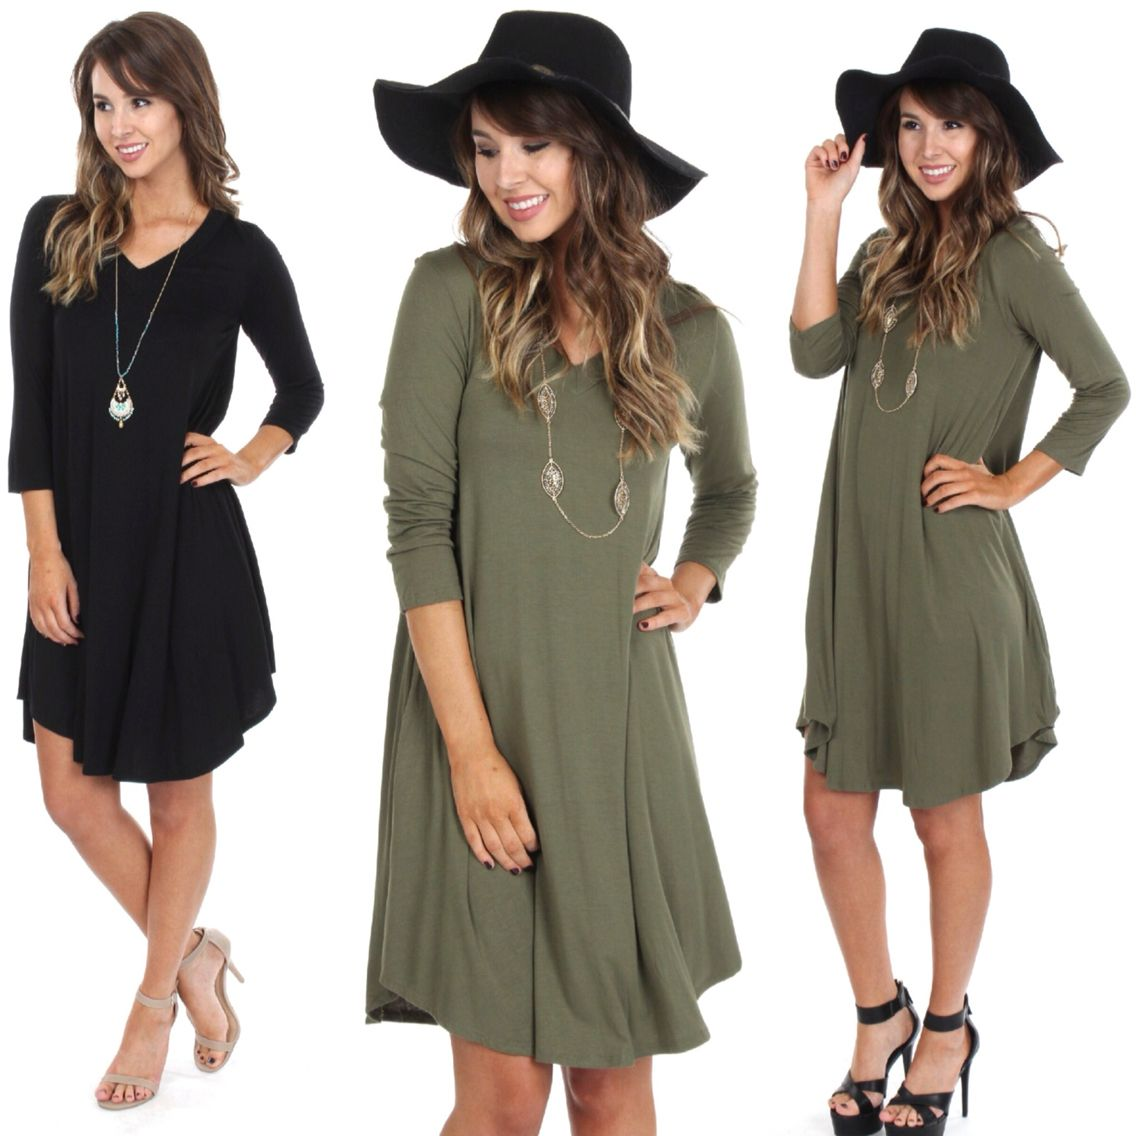 Ready, Set, FALL!! So excited for these comfy NEW ARRIVALS!!   V-Neck Midi Shift Dress ($29.99 at #4thandocean) also available in Olive   Wild West Buckle Hat ($18.99 at #sophieandtrey)   Visit us in store until 8p or head online to shop with FREE shipping! XO   www.sophieandtrey.com  #sophieandtrey #love #boutique #clothes #trend #fashion #fall #fun